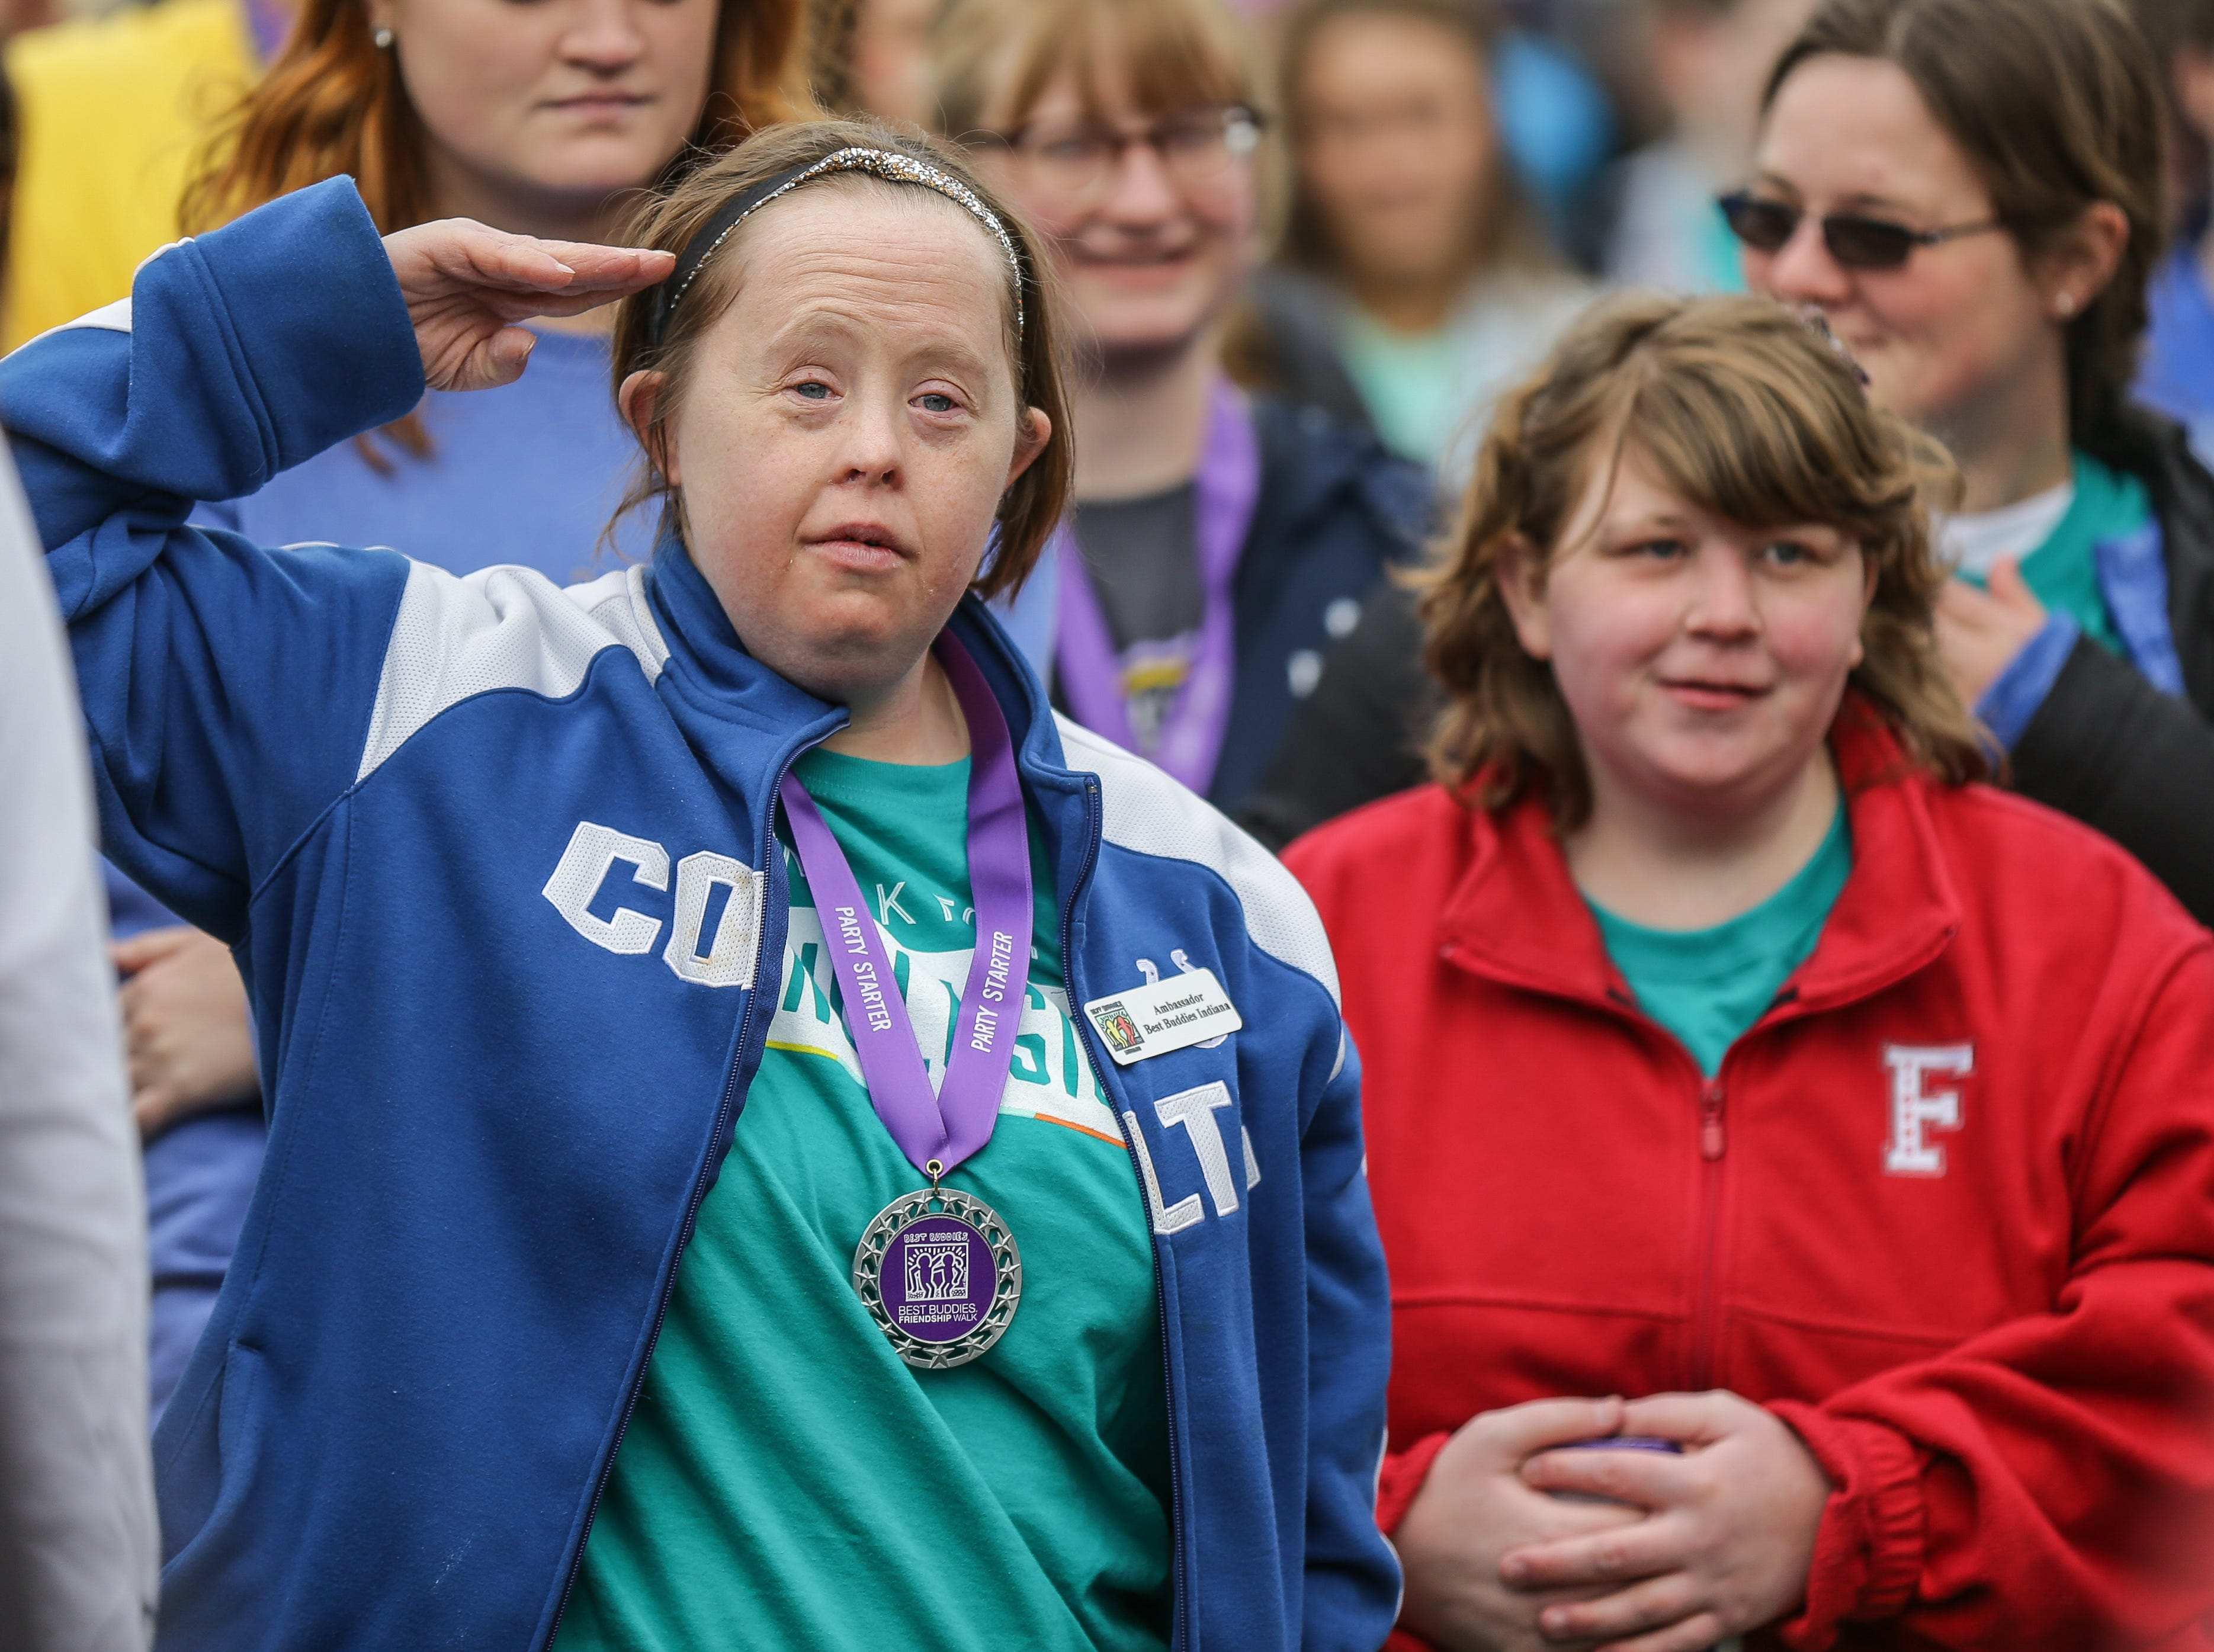 Kylene Webber, left, salutes during the National Anthem while standing next to Annie Wood, right, during the Best Buddies Friendship Walk held at White River State Park in Indianapolis on Sunday, April 22, 2018.